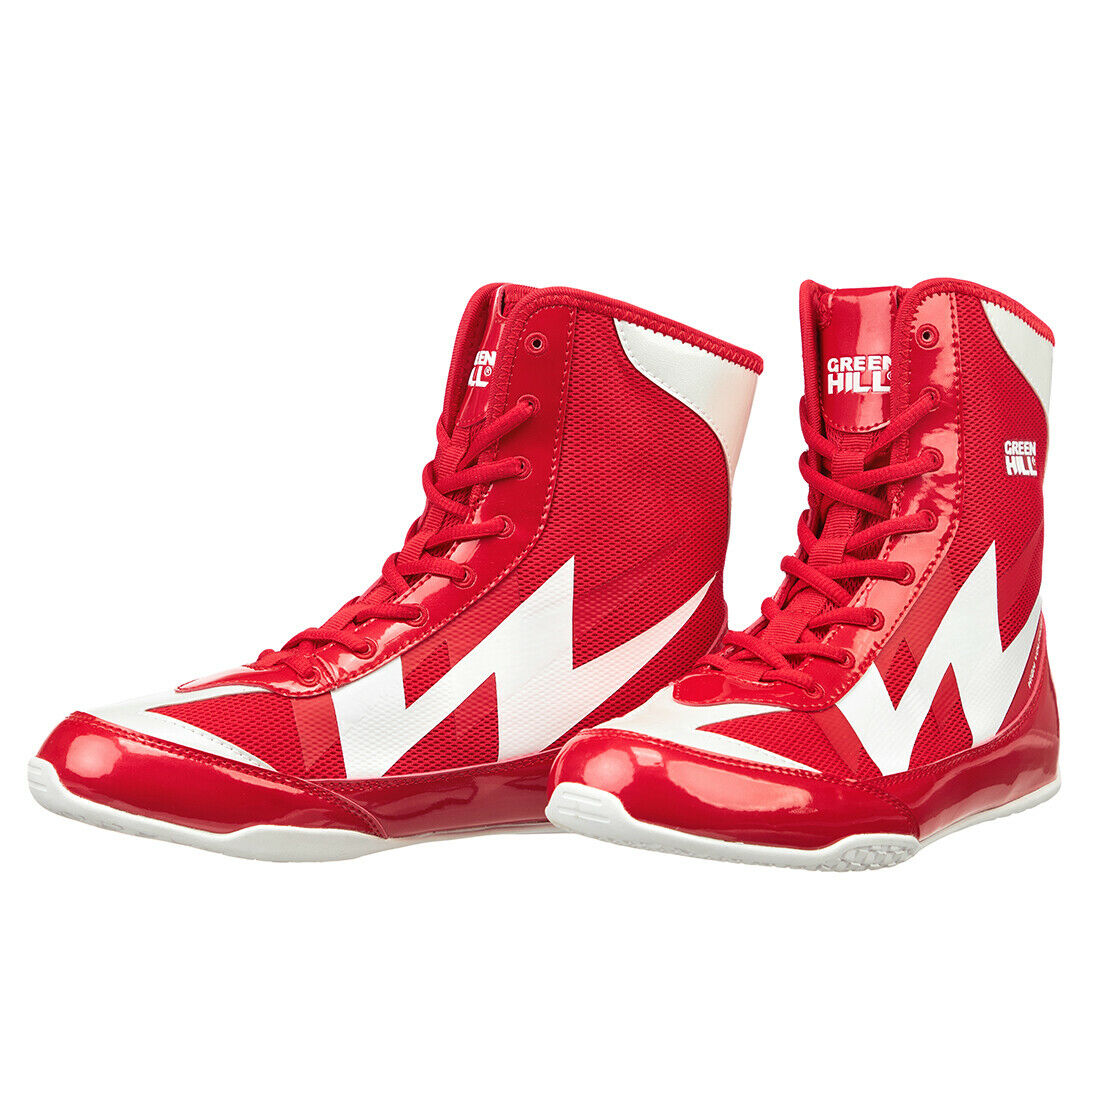 GREEN HILL BOXING SHOES STORM RED